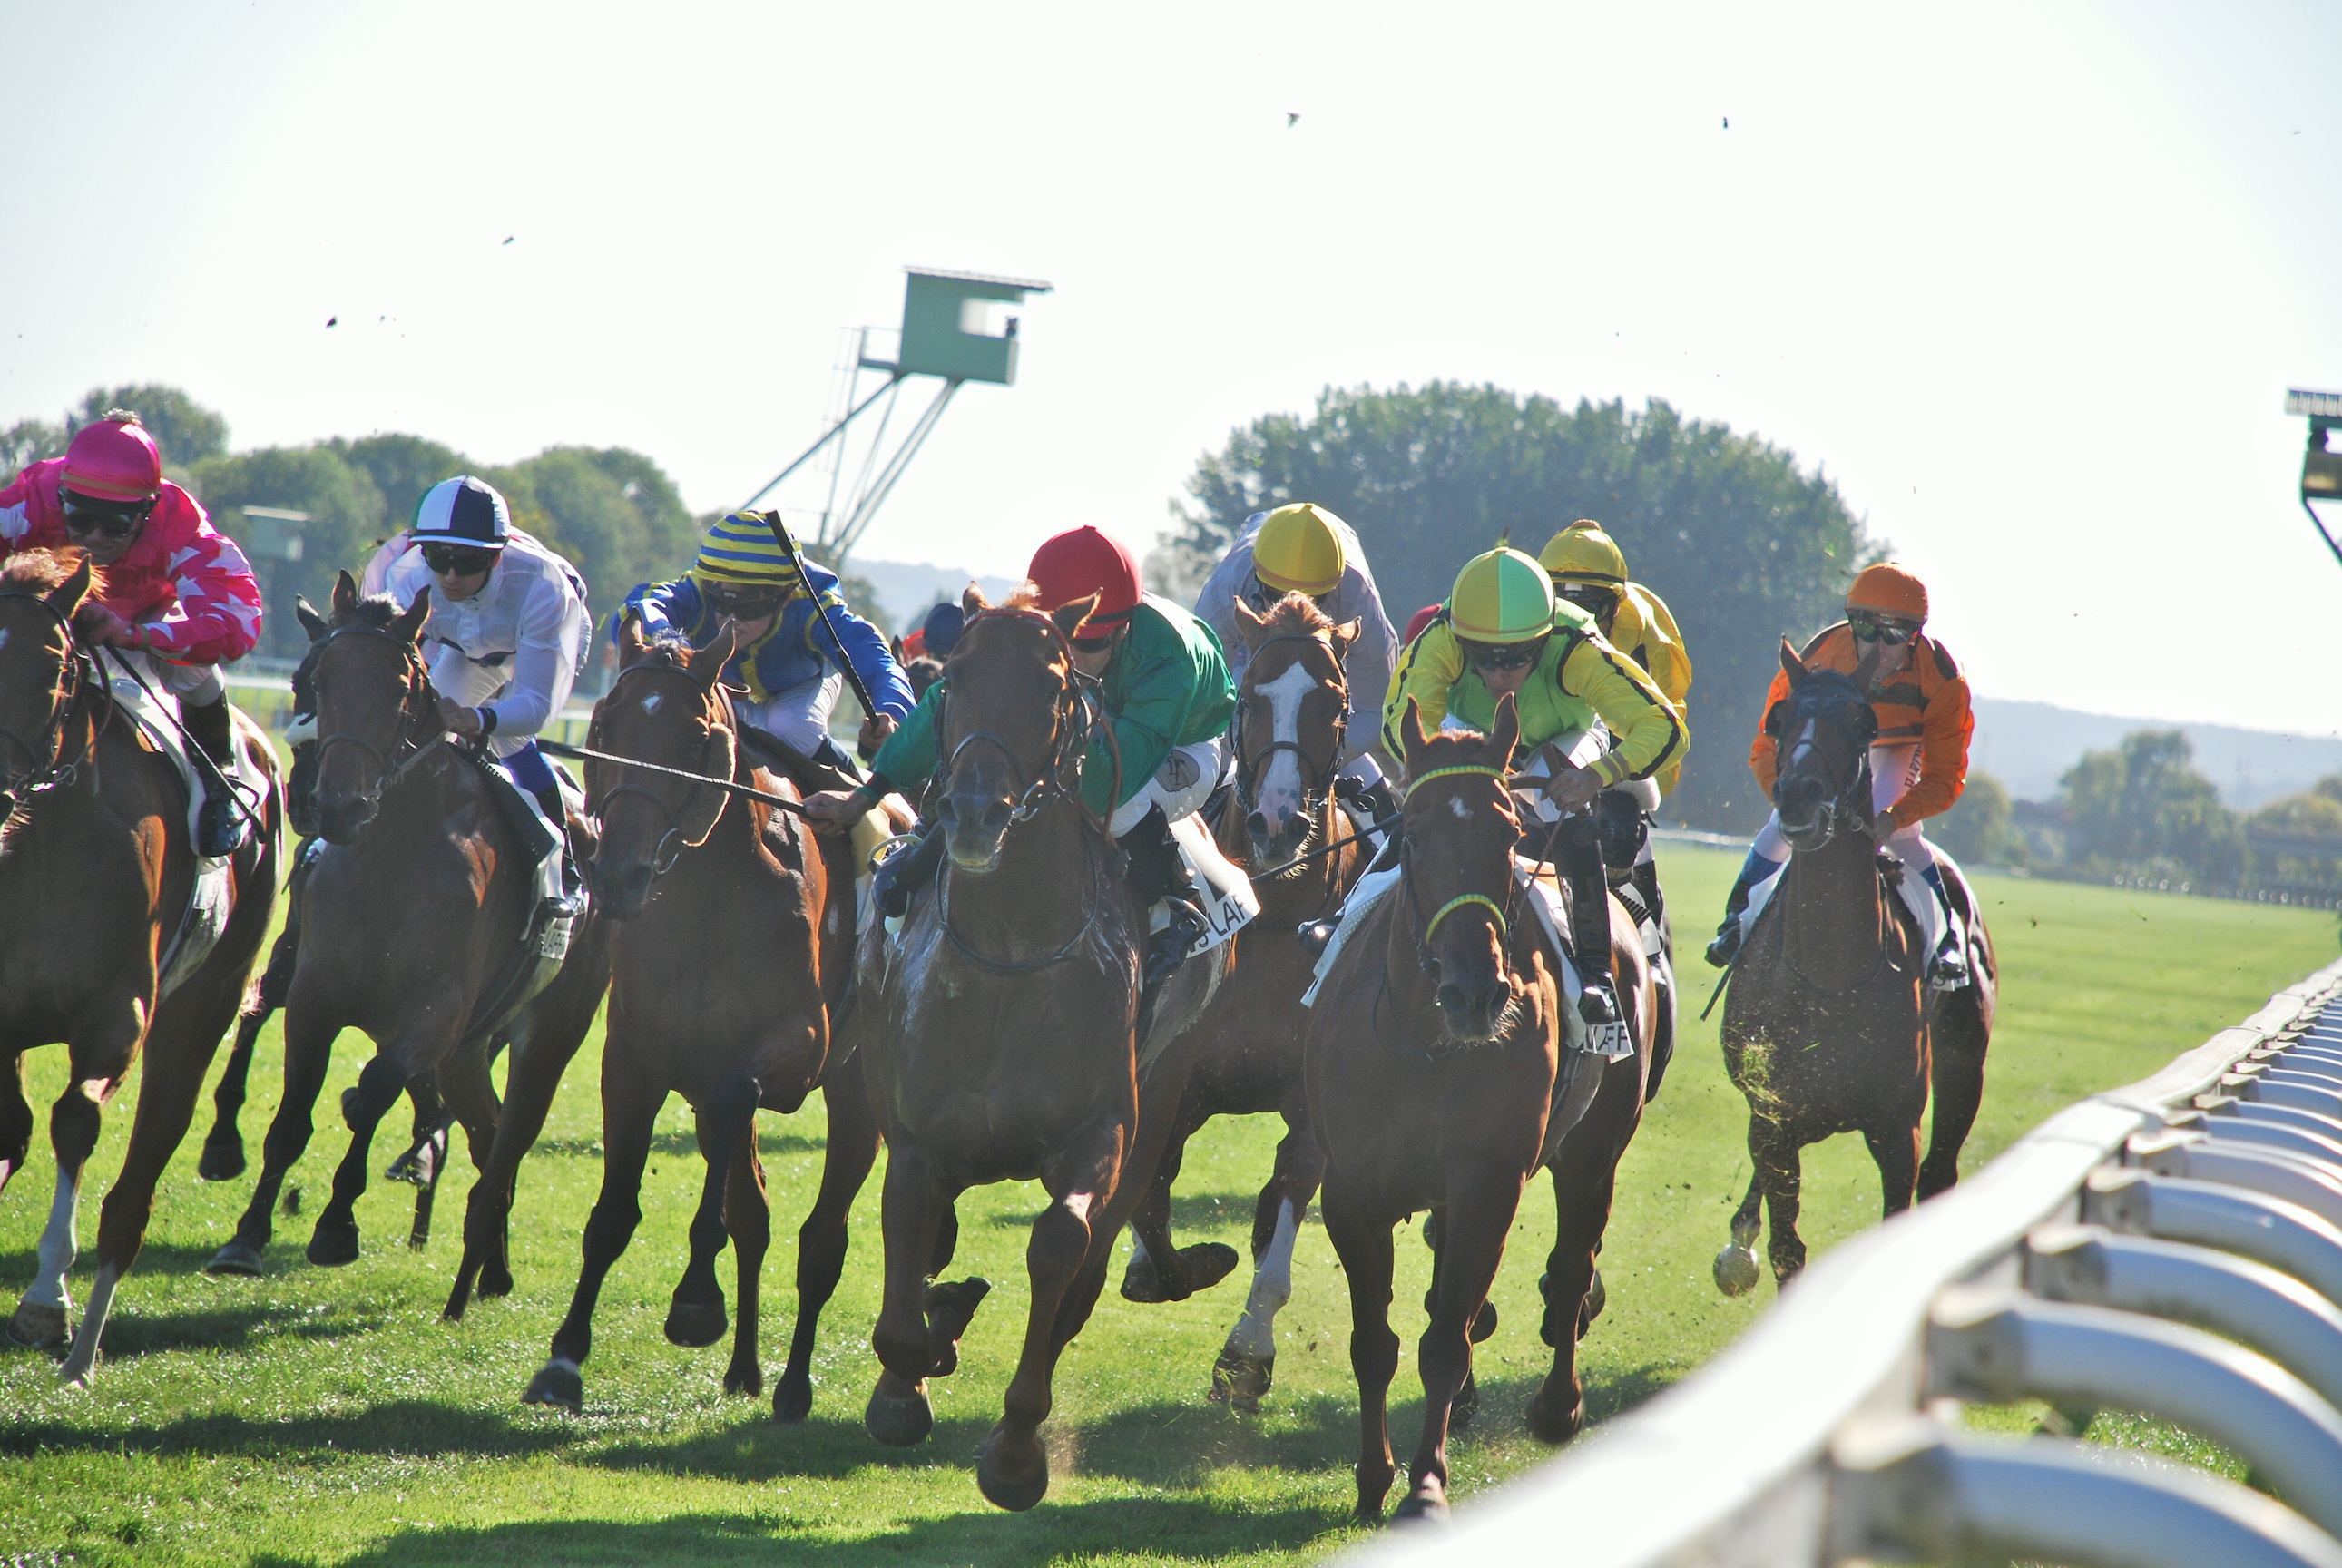 Betting coup: the Maisons-Laffitte race won by the Gina Rarick-trained Skid Solo (green colours, red cap), backed by Mark Cramer and Alan Kennedy at 20/1. Photo: John Gilmore